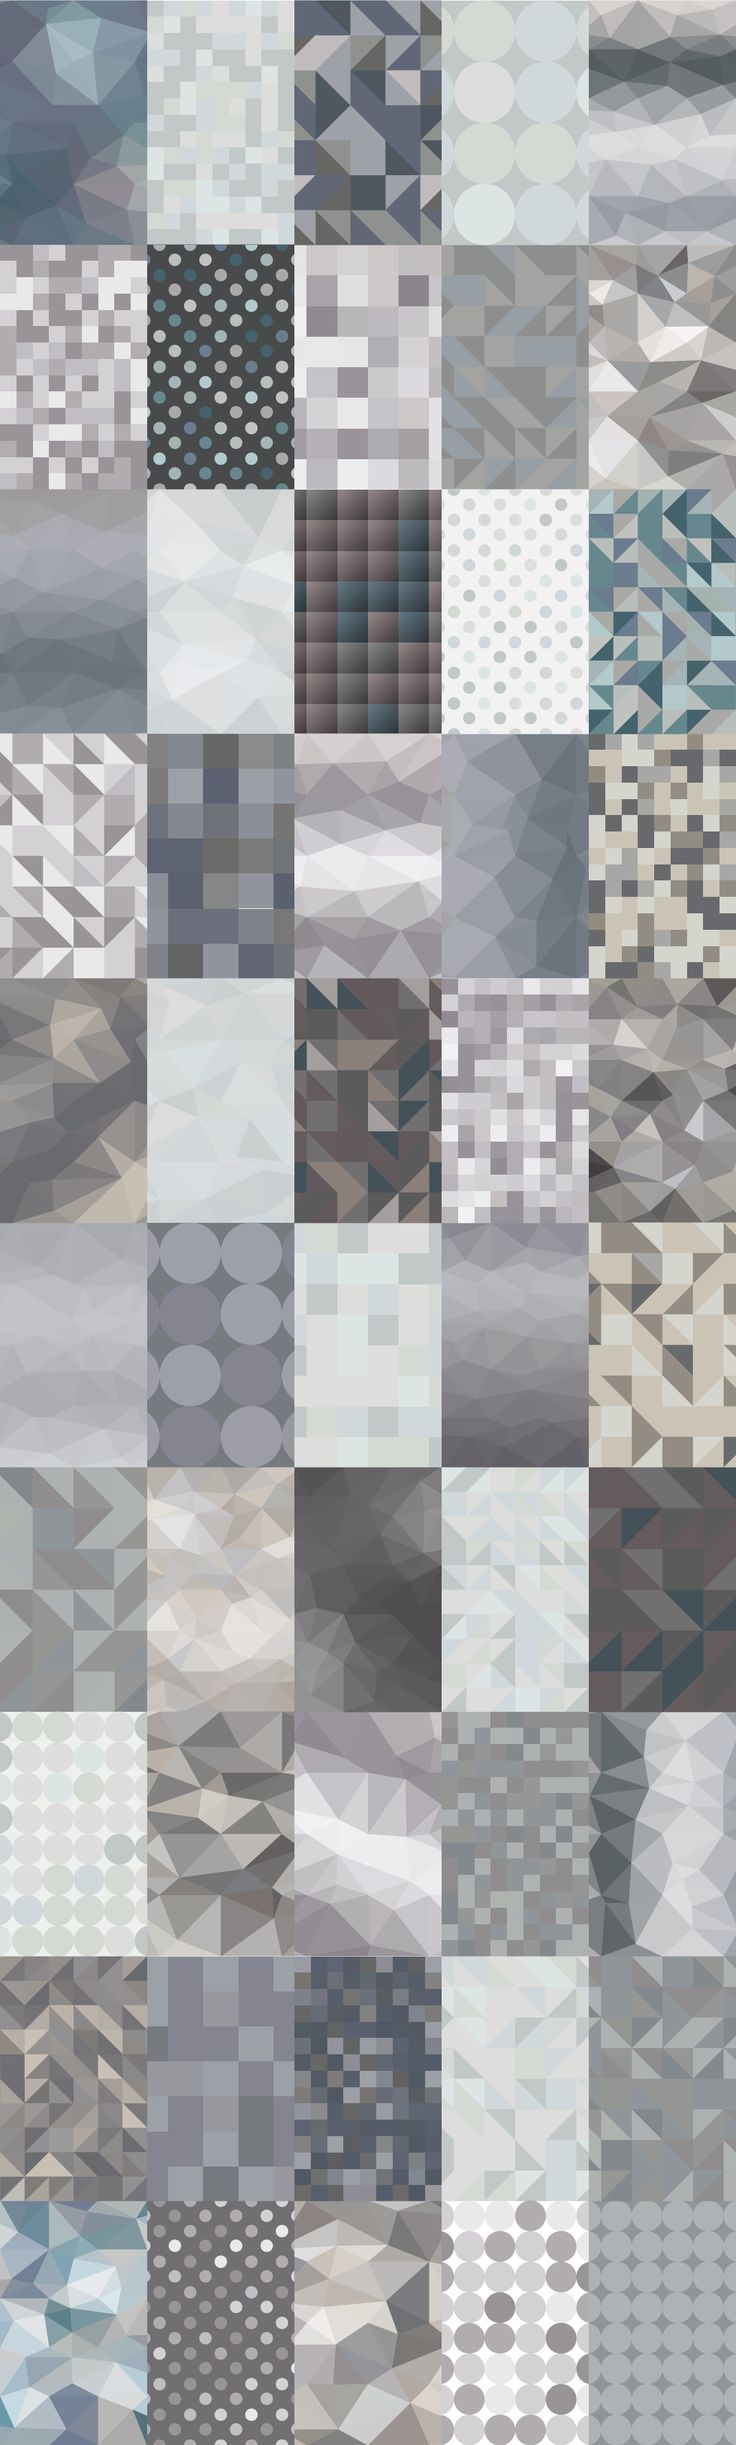 50 Geometric Patterns | Grey by Marmalade Moon on Creative Market